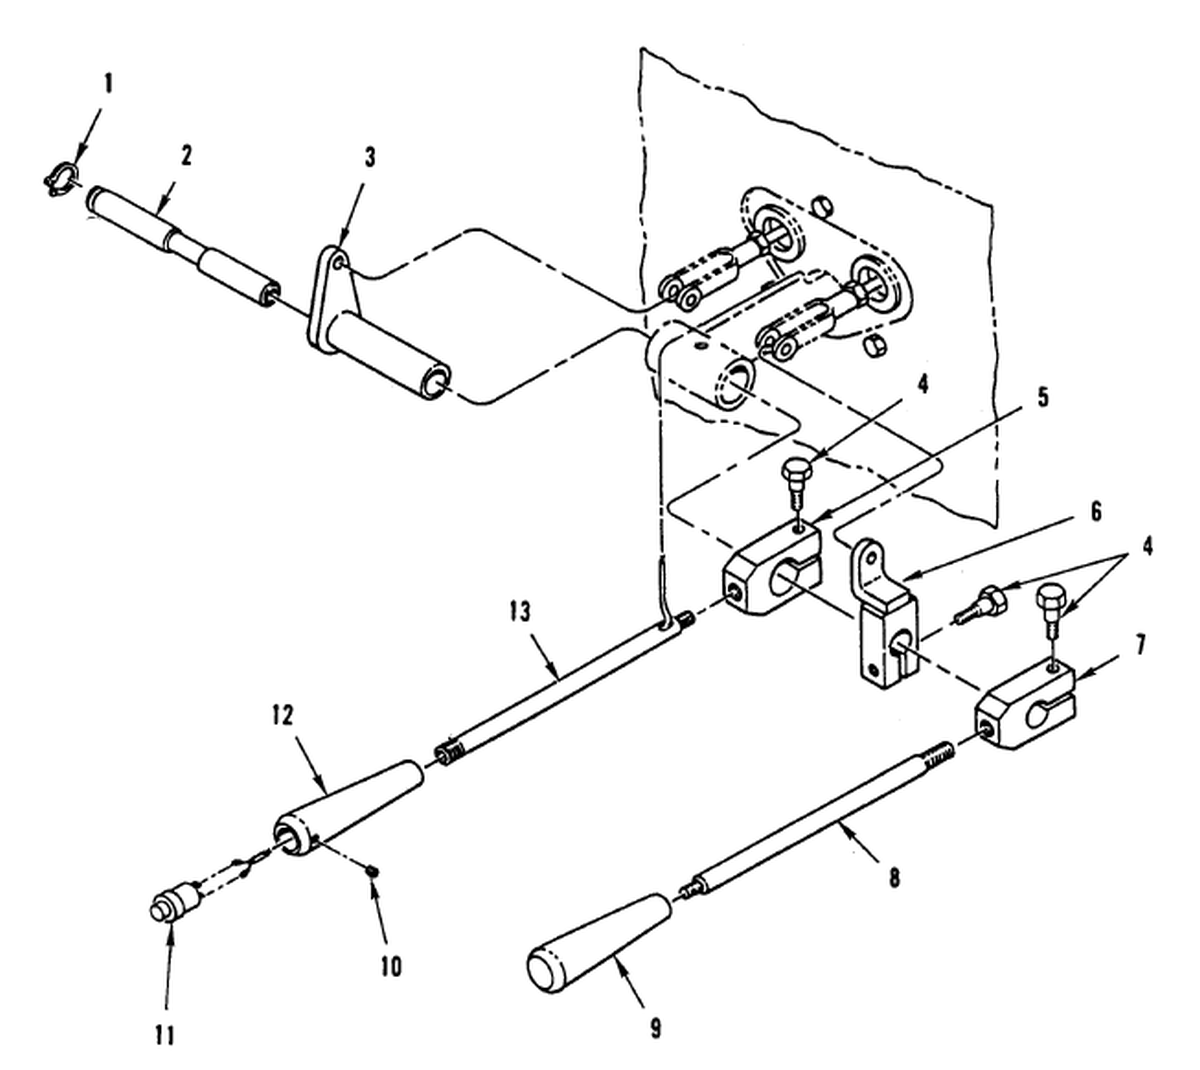 00 2 Figure 257 Hydraulic Control Levers And Linkage